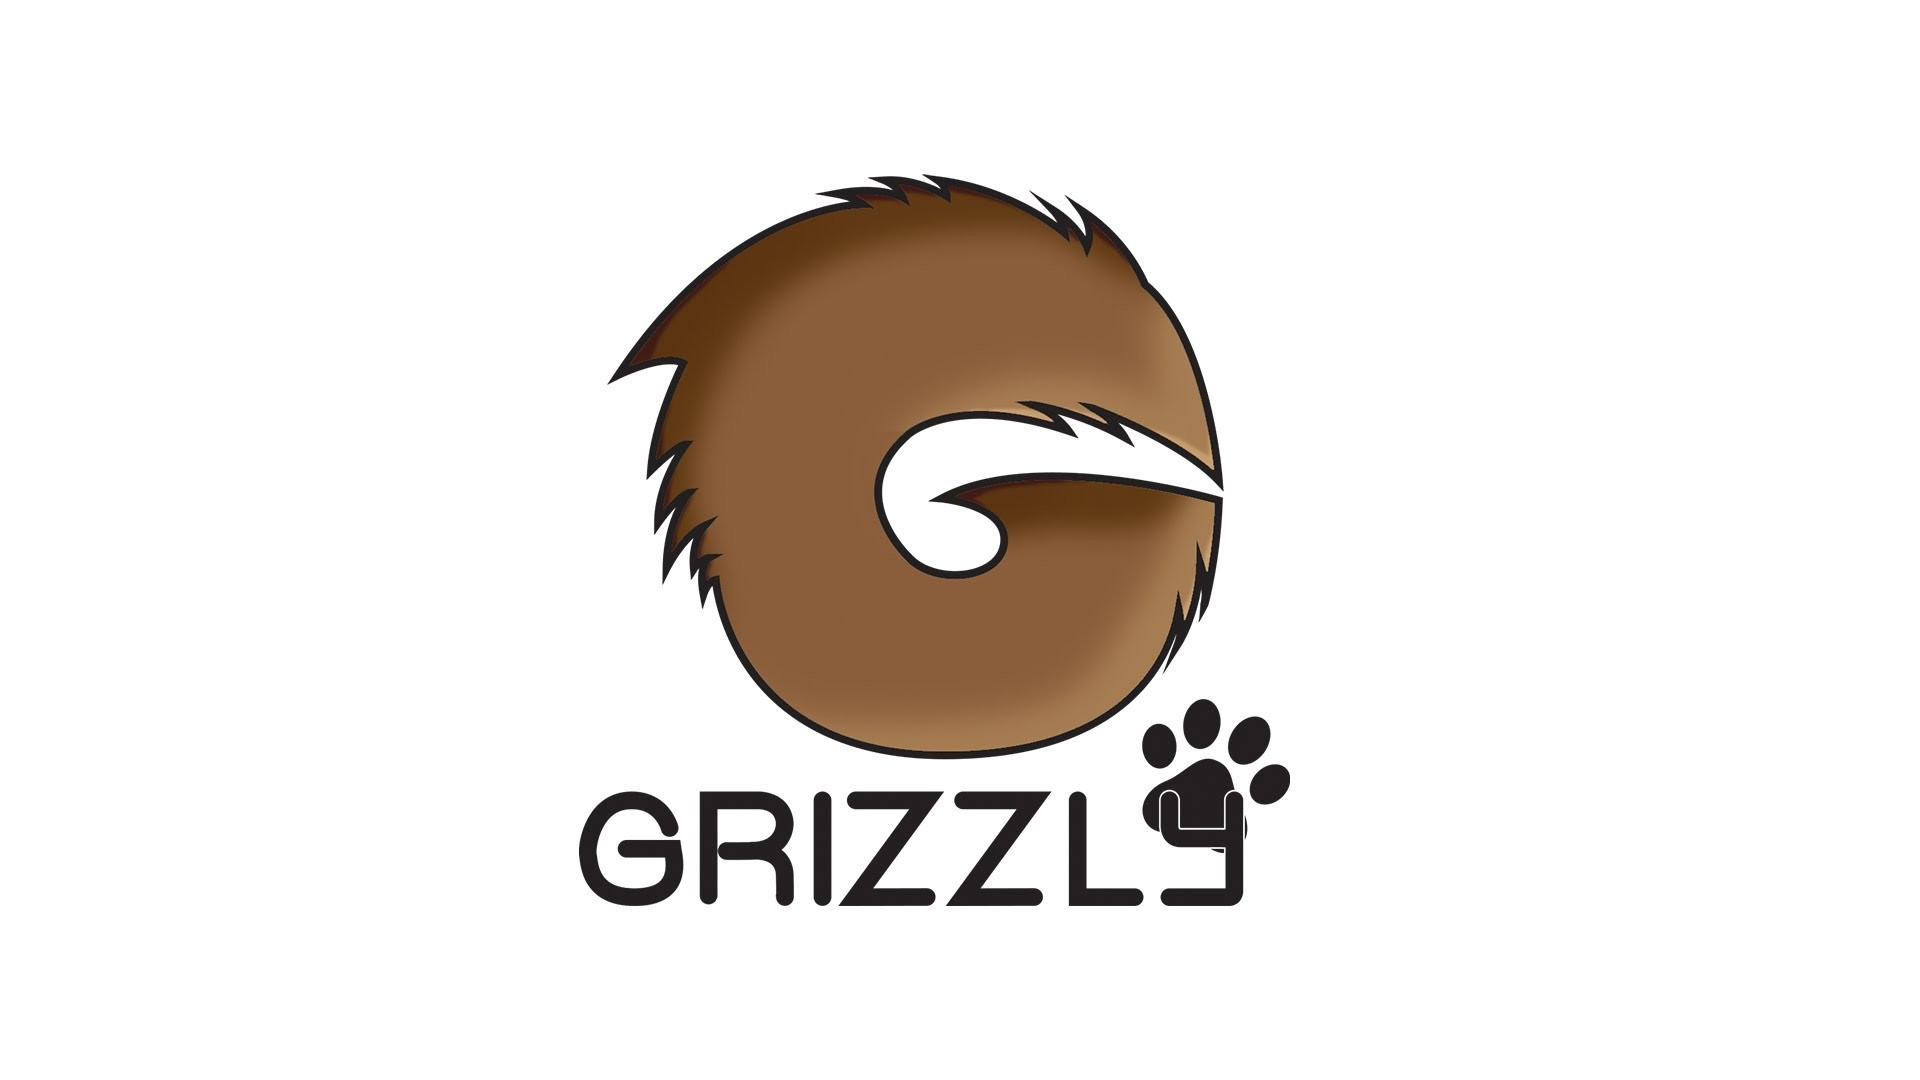 Res: 1920x1080, Grizzly Graphic Designs   Grizzly Logo